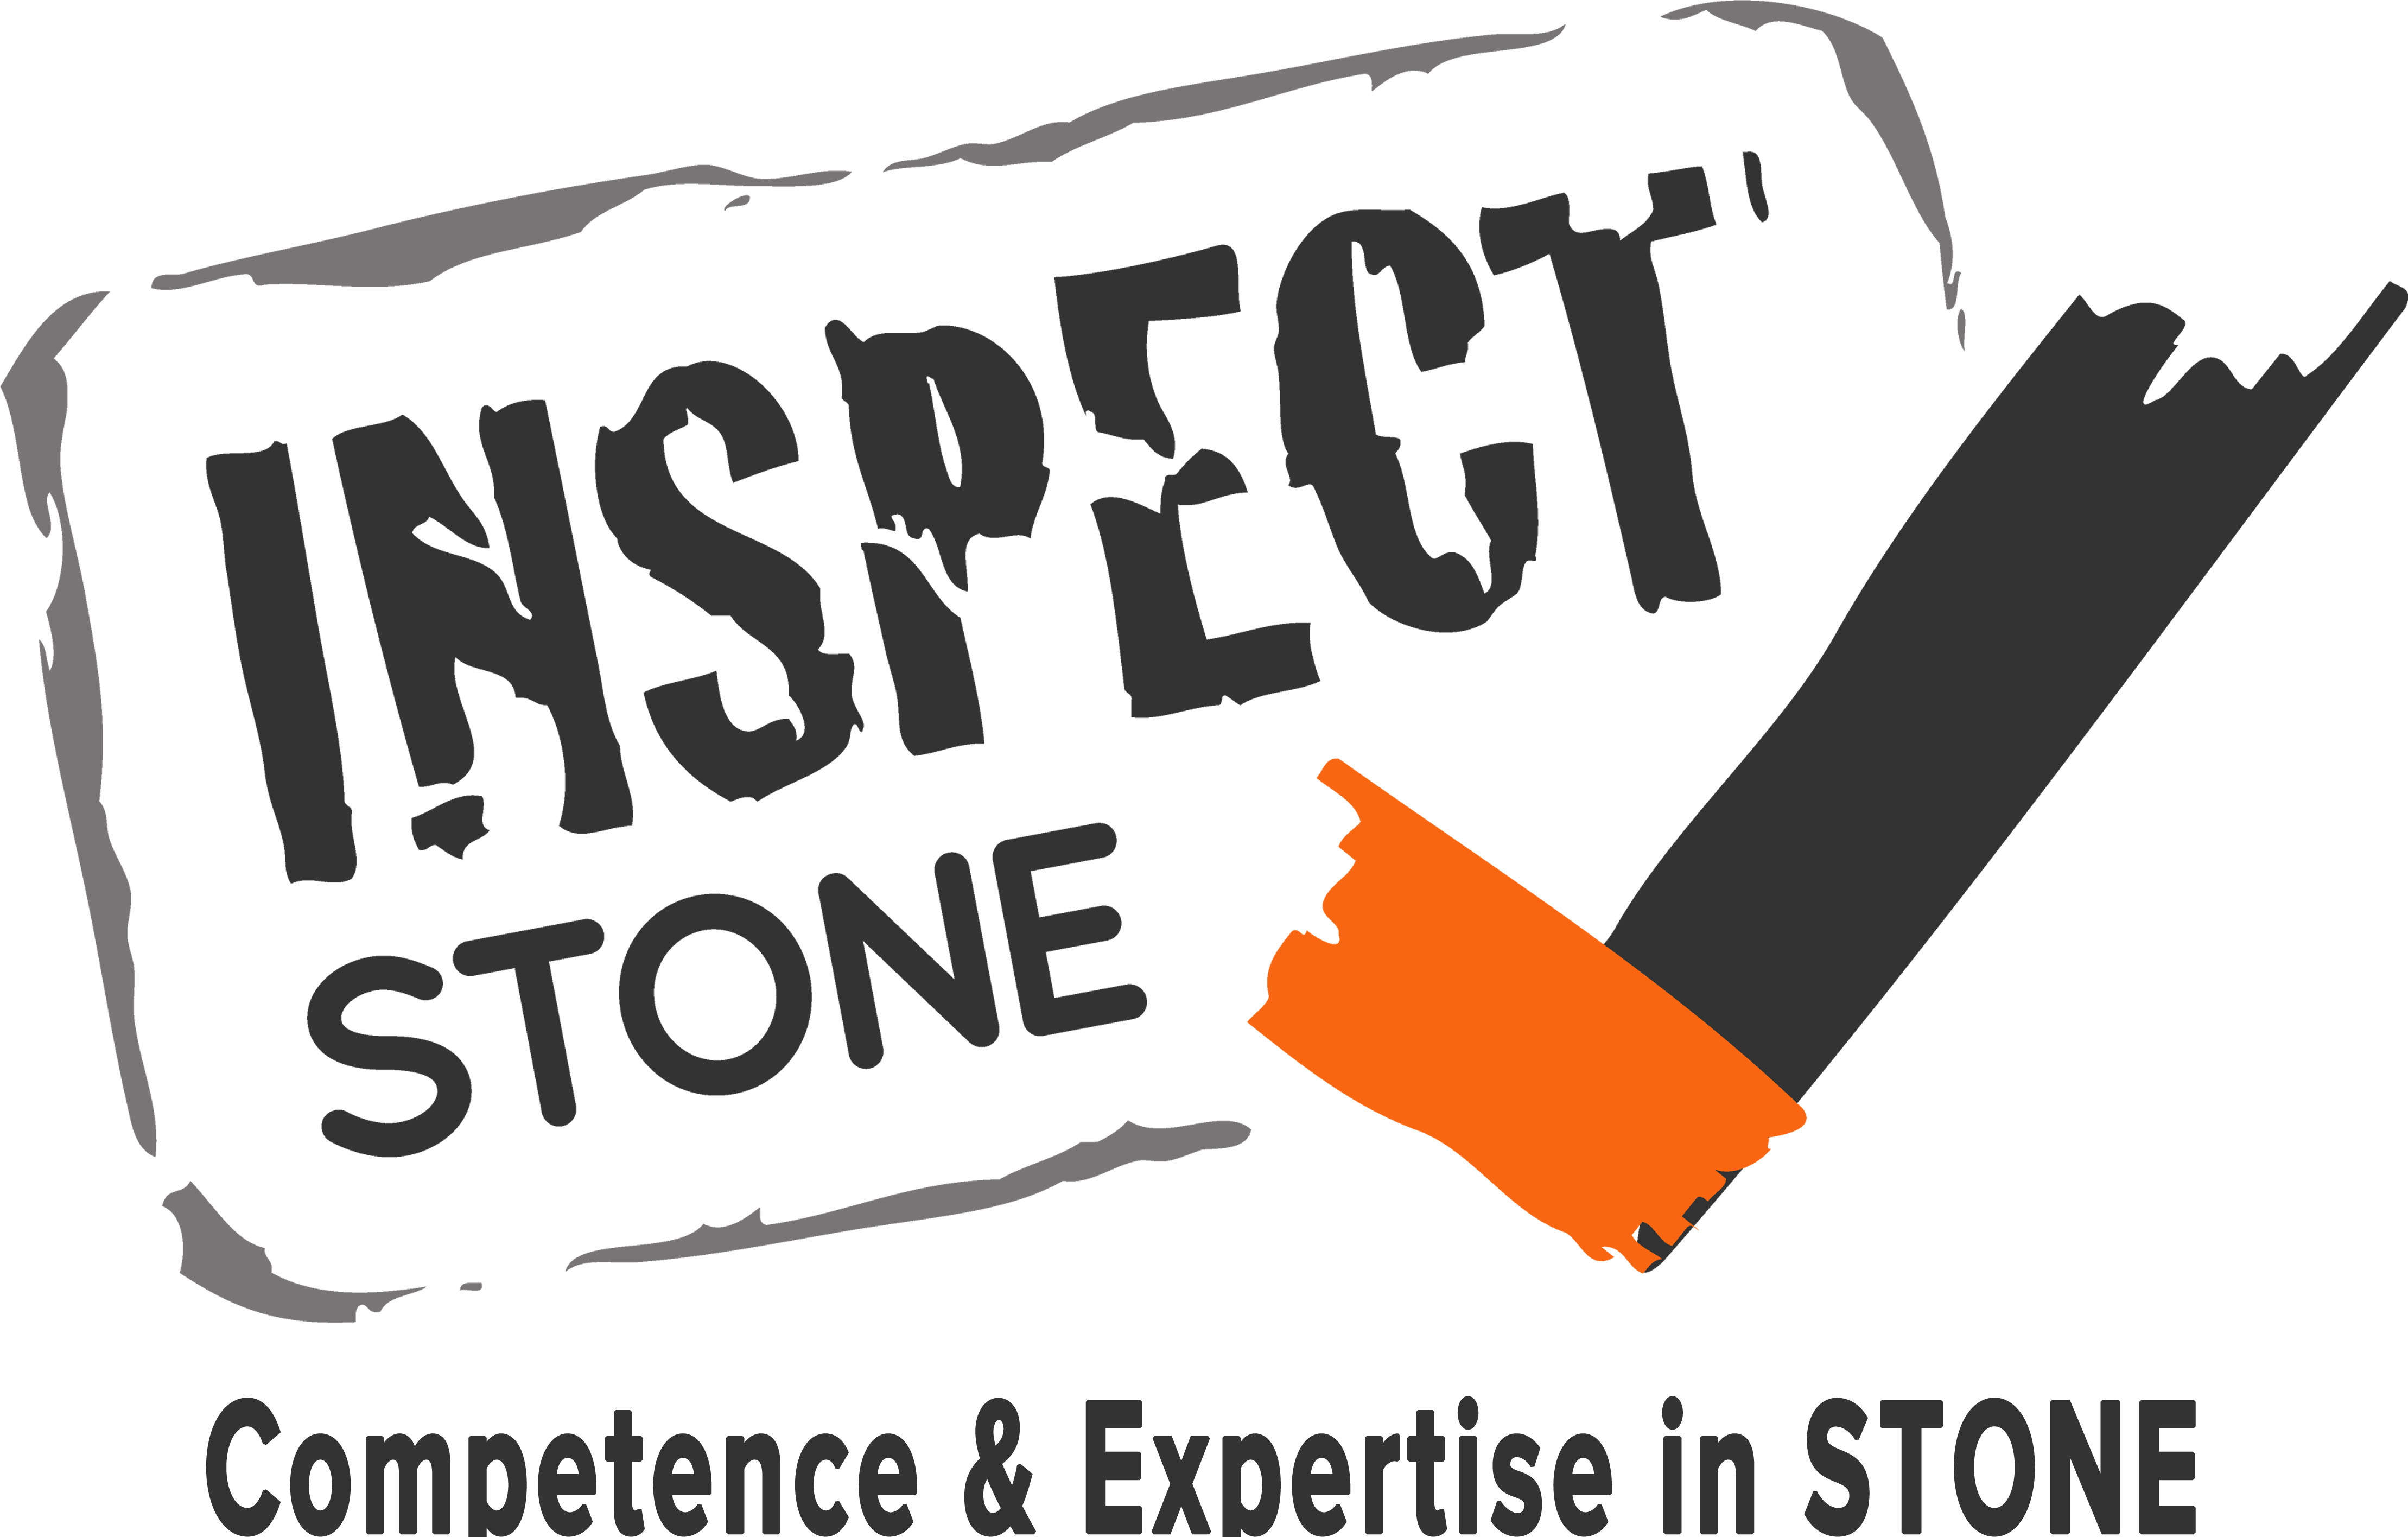 TRUSTUM DIŞ TİCARET LİMİTED ŞİRKETİ, INSPECTSTONE (Inspectstone is a natural stone producer, supplier, inspection and consultancy company for Turkish stone established in 2003 in Istanbul, Turkey.)